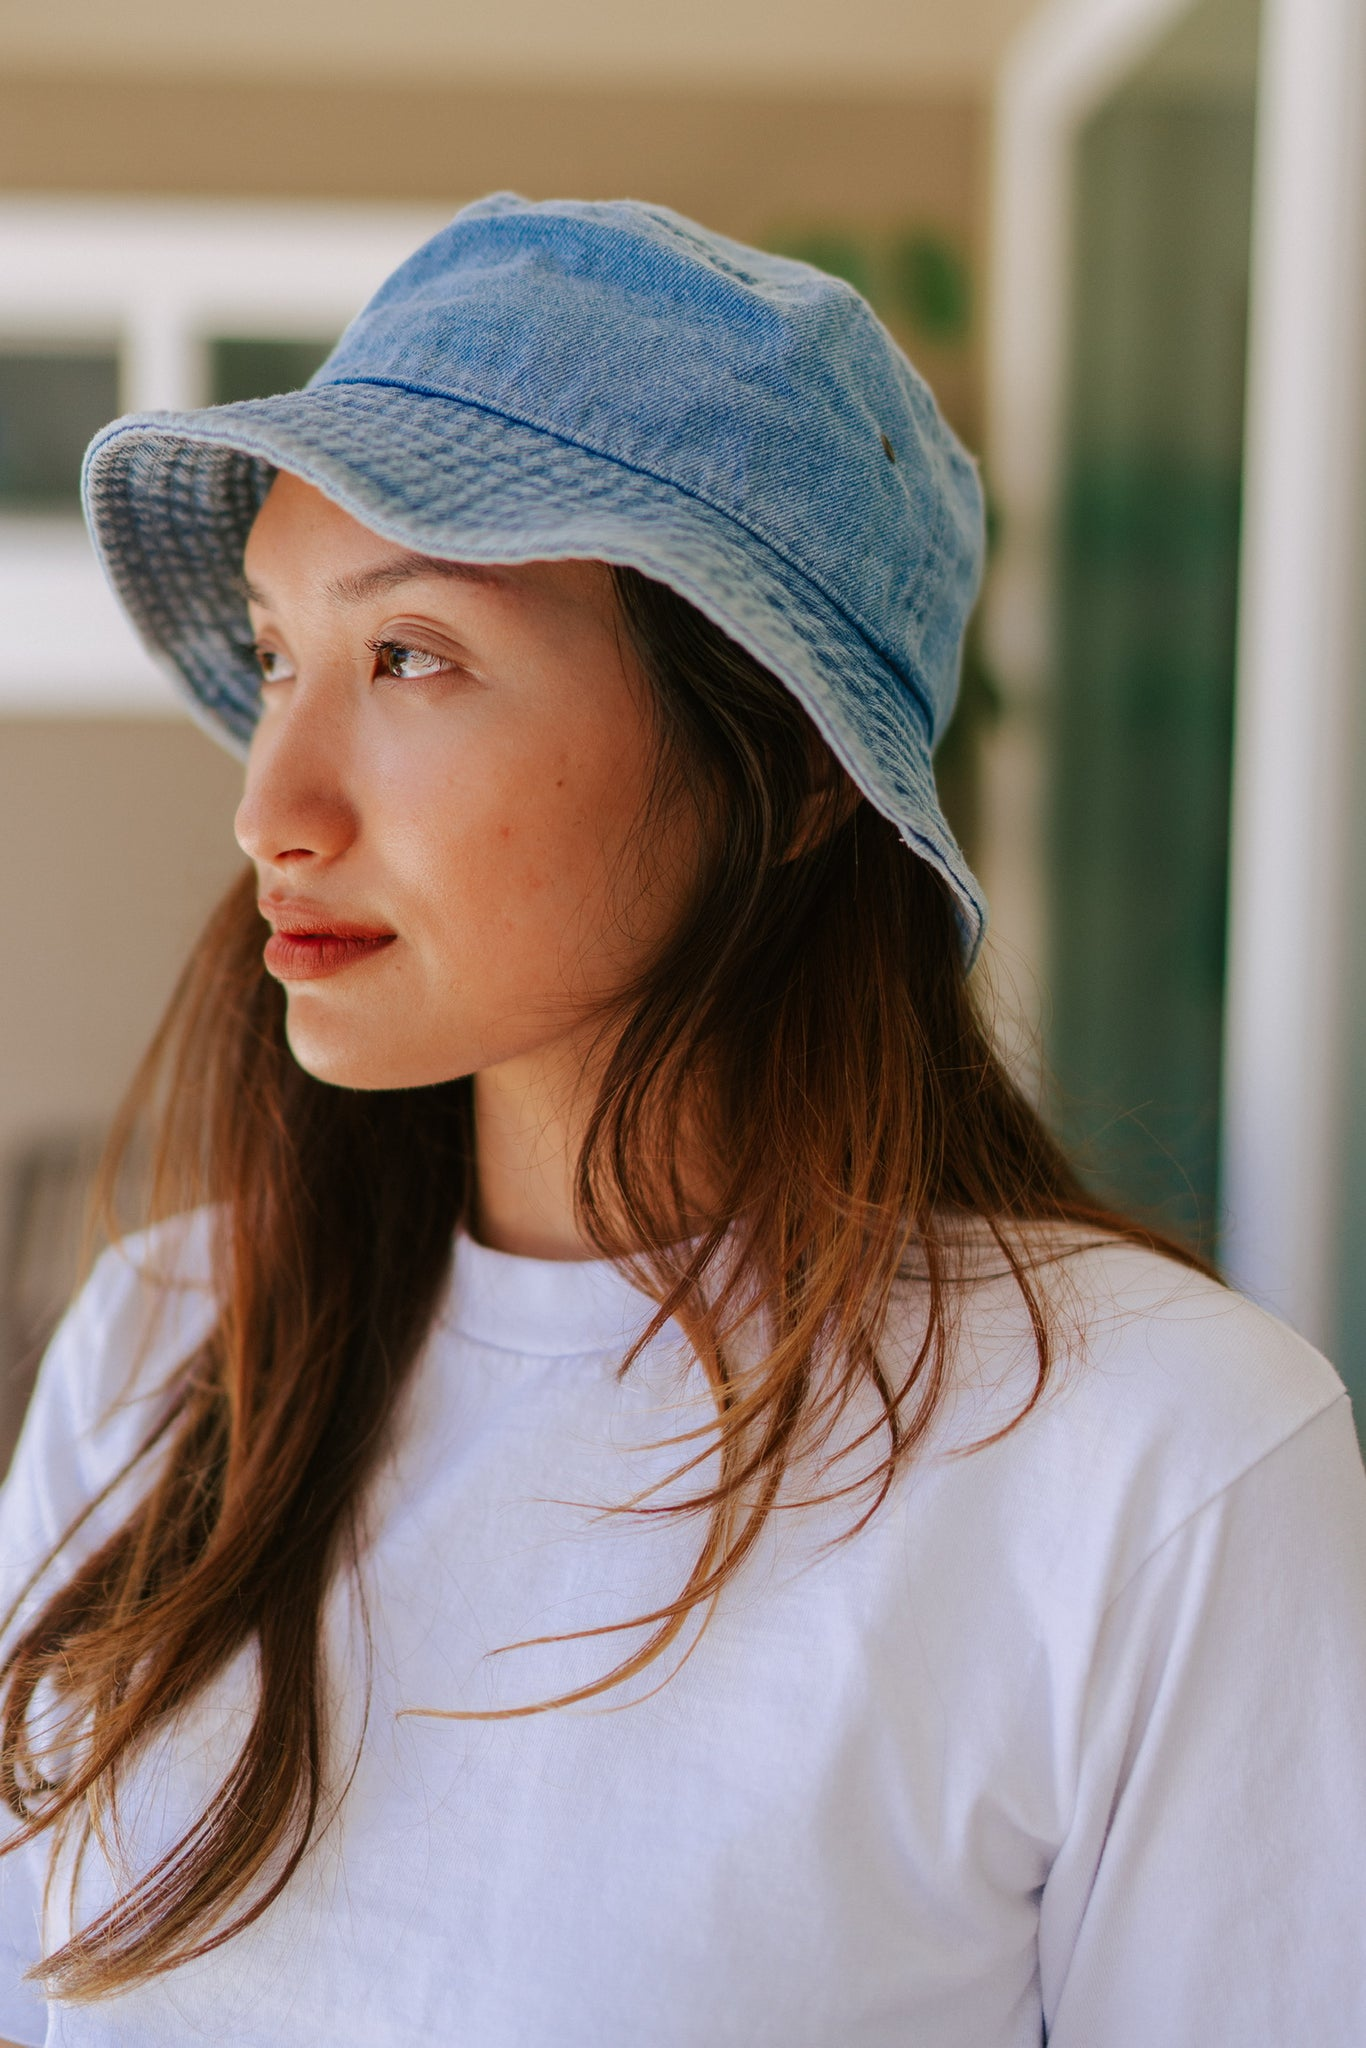 Naomi Denim Bucket Hat - Light Denim